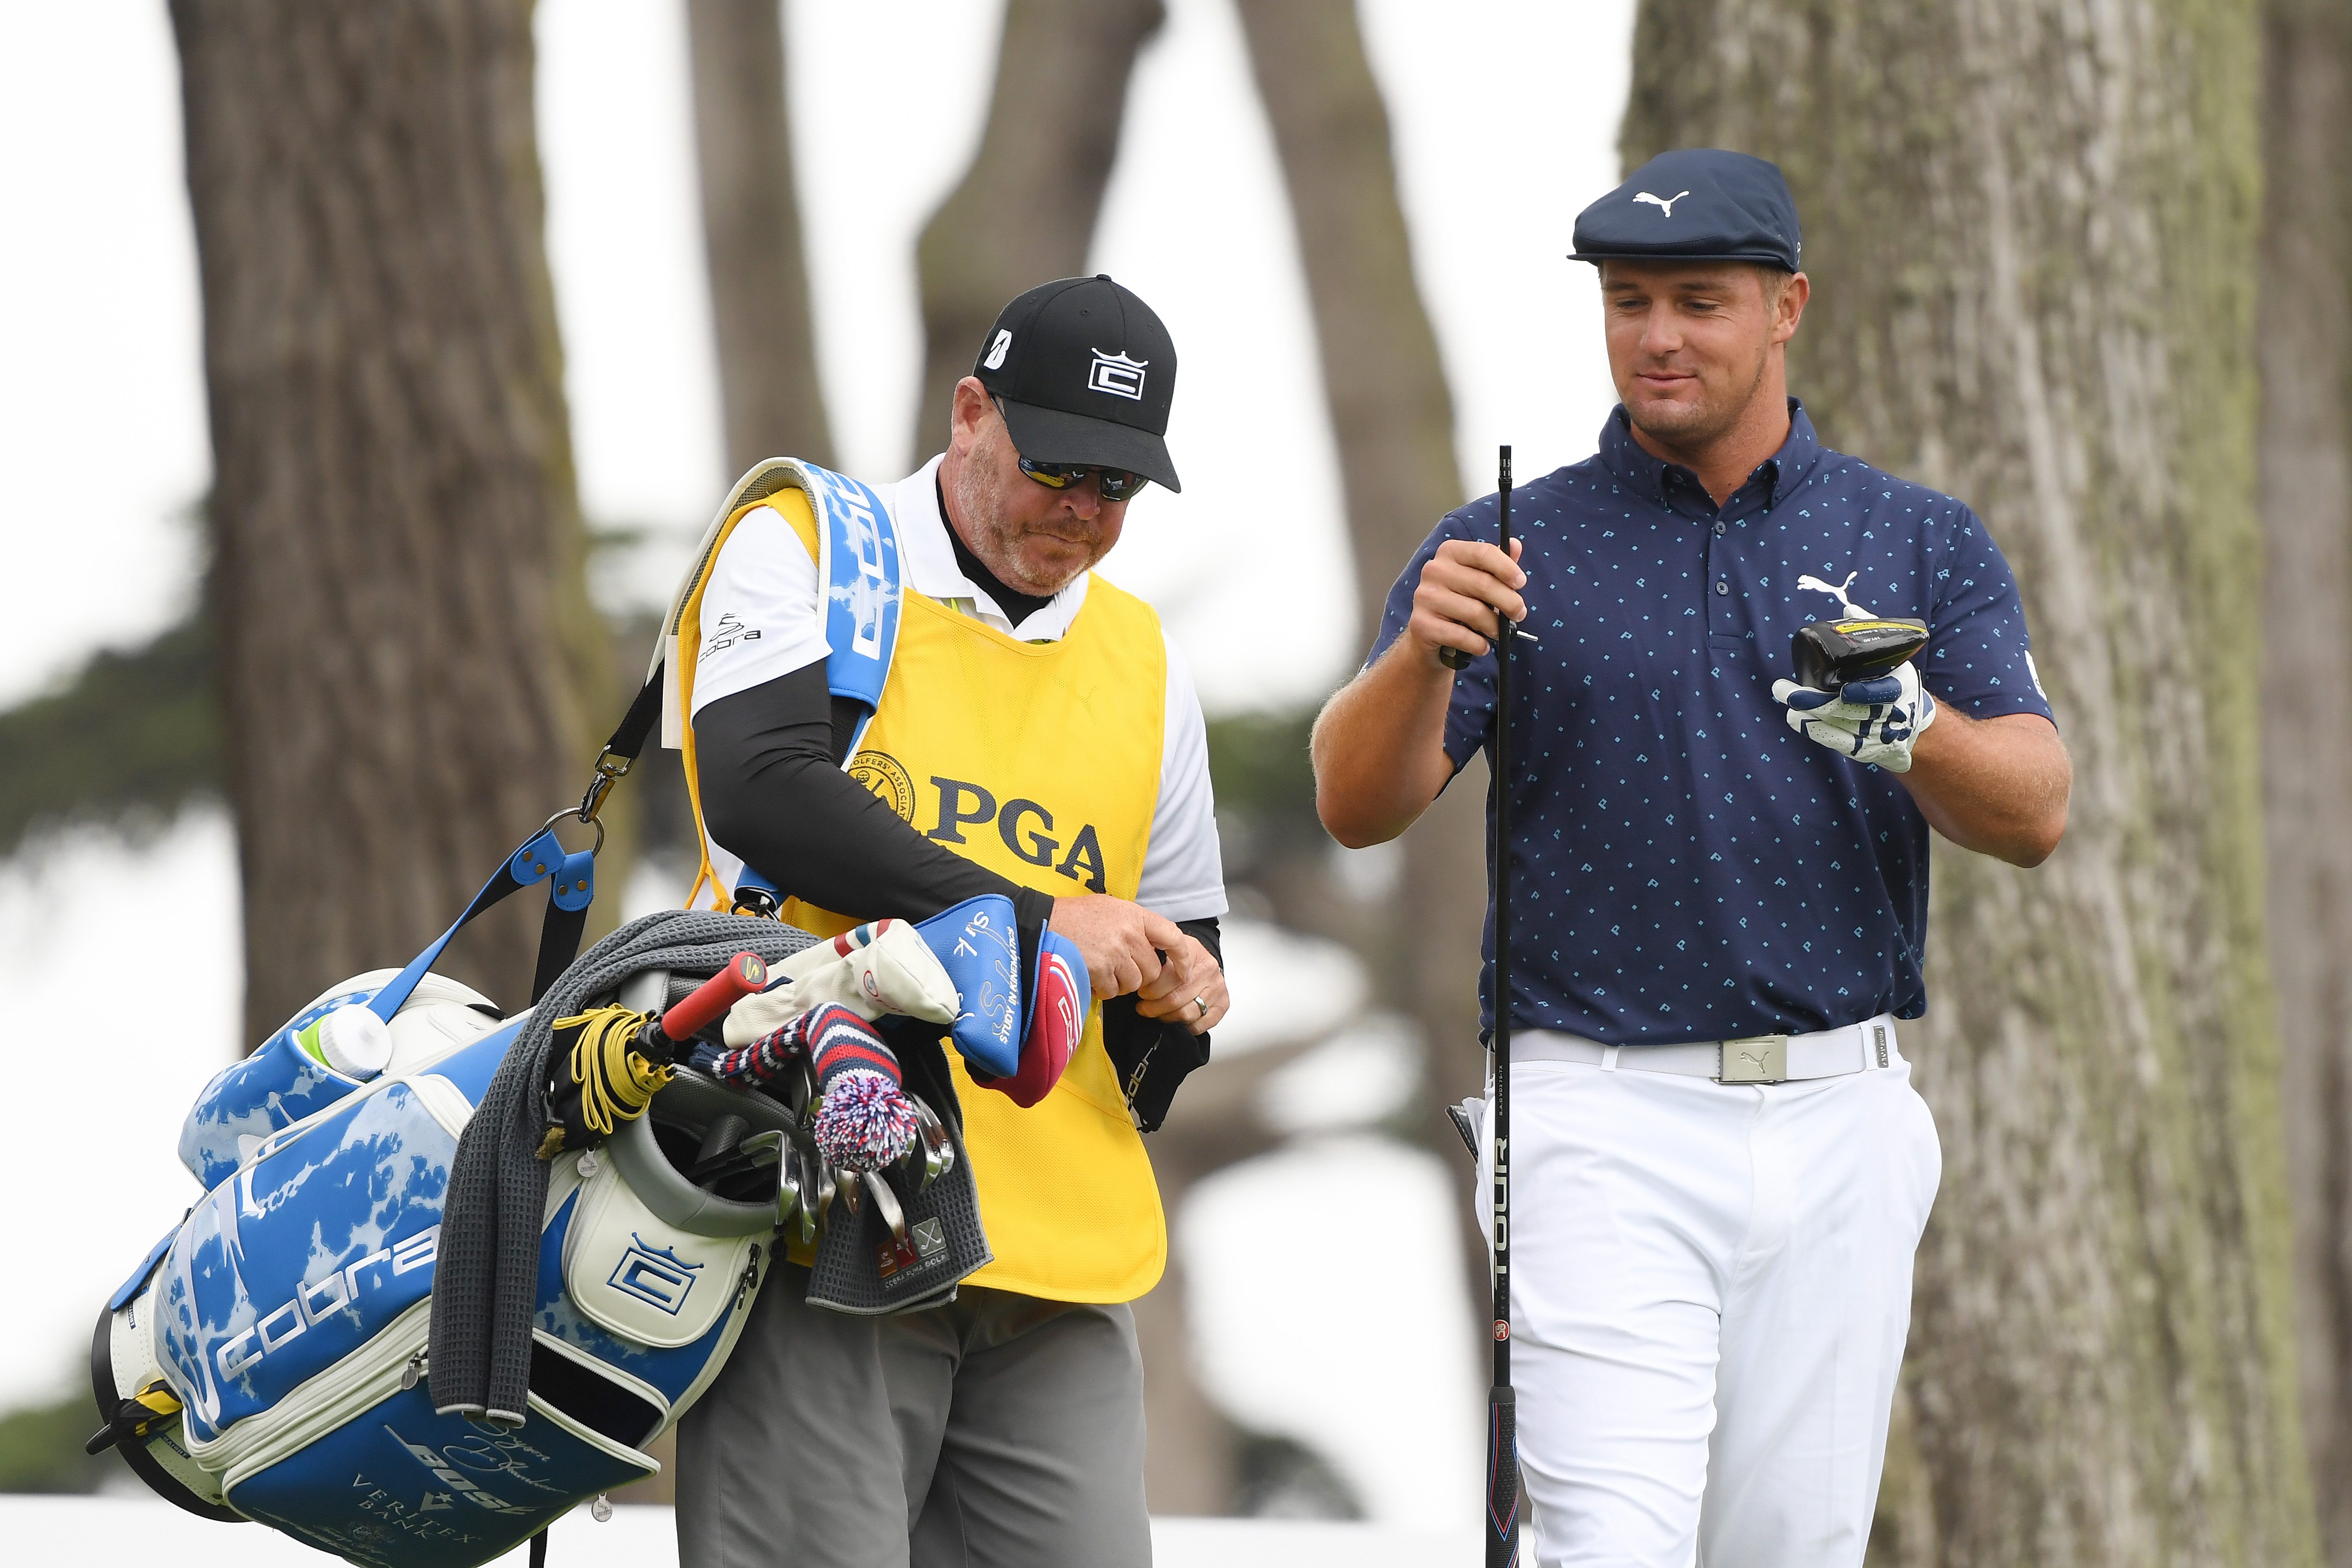 Bryson DeChambeau snaps driver during PGA Championship opening round